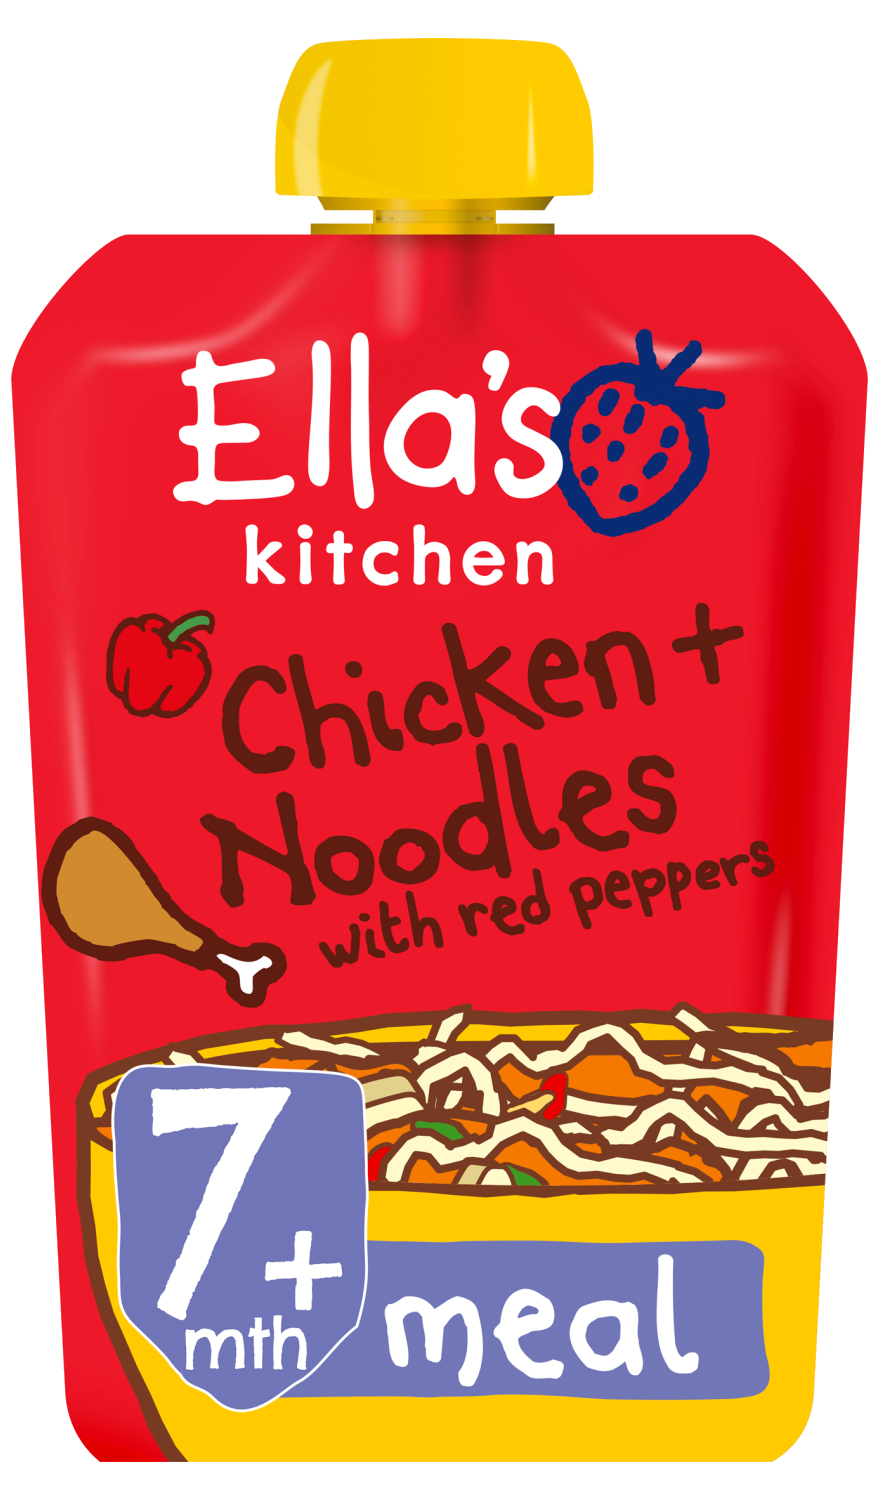 Ellas kitchen chicken noodles red peppers pouch 7 months front of pack O